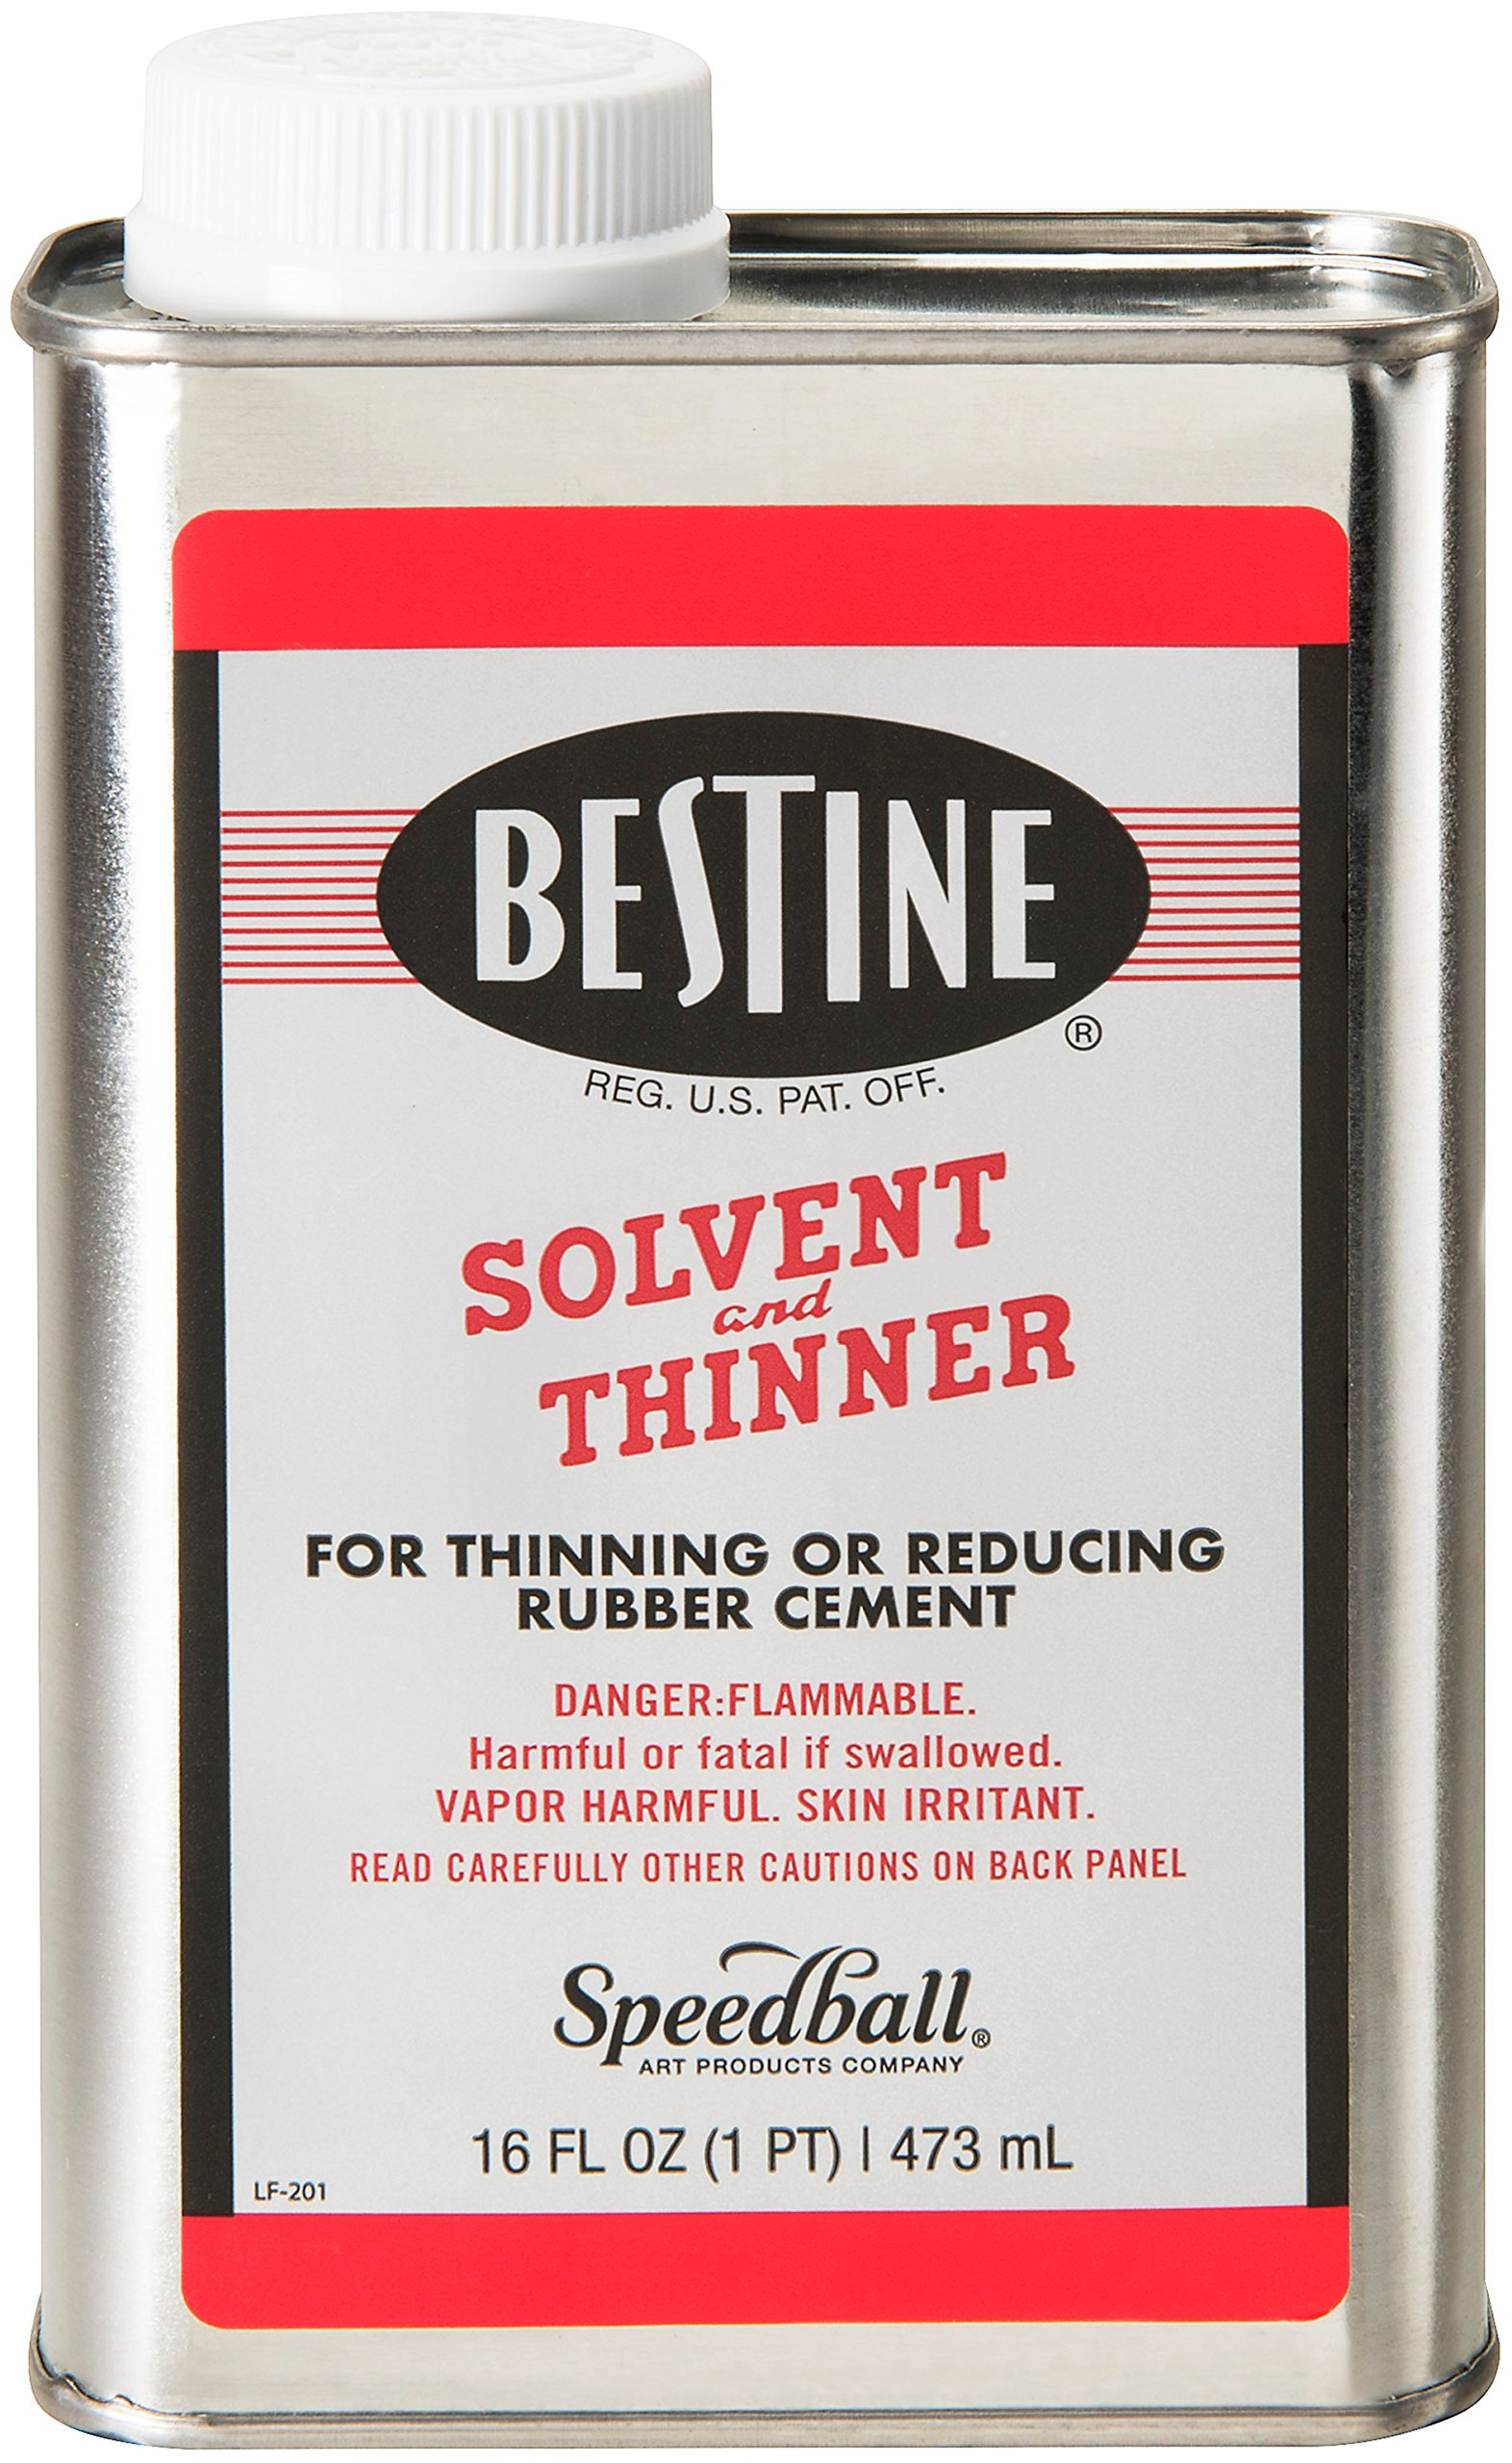 Bestine Solvent and Thinner for Rubber Cement - Cleans Ink, Adhesive and Parts, 16 Ounce Can